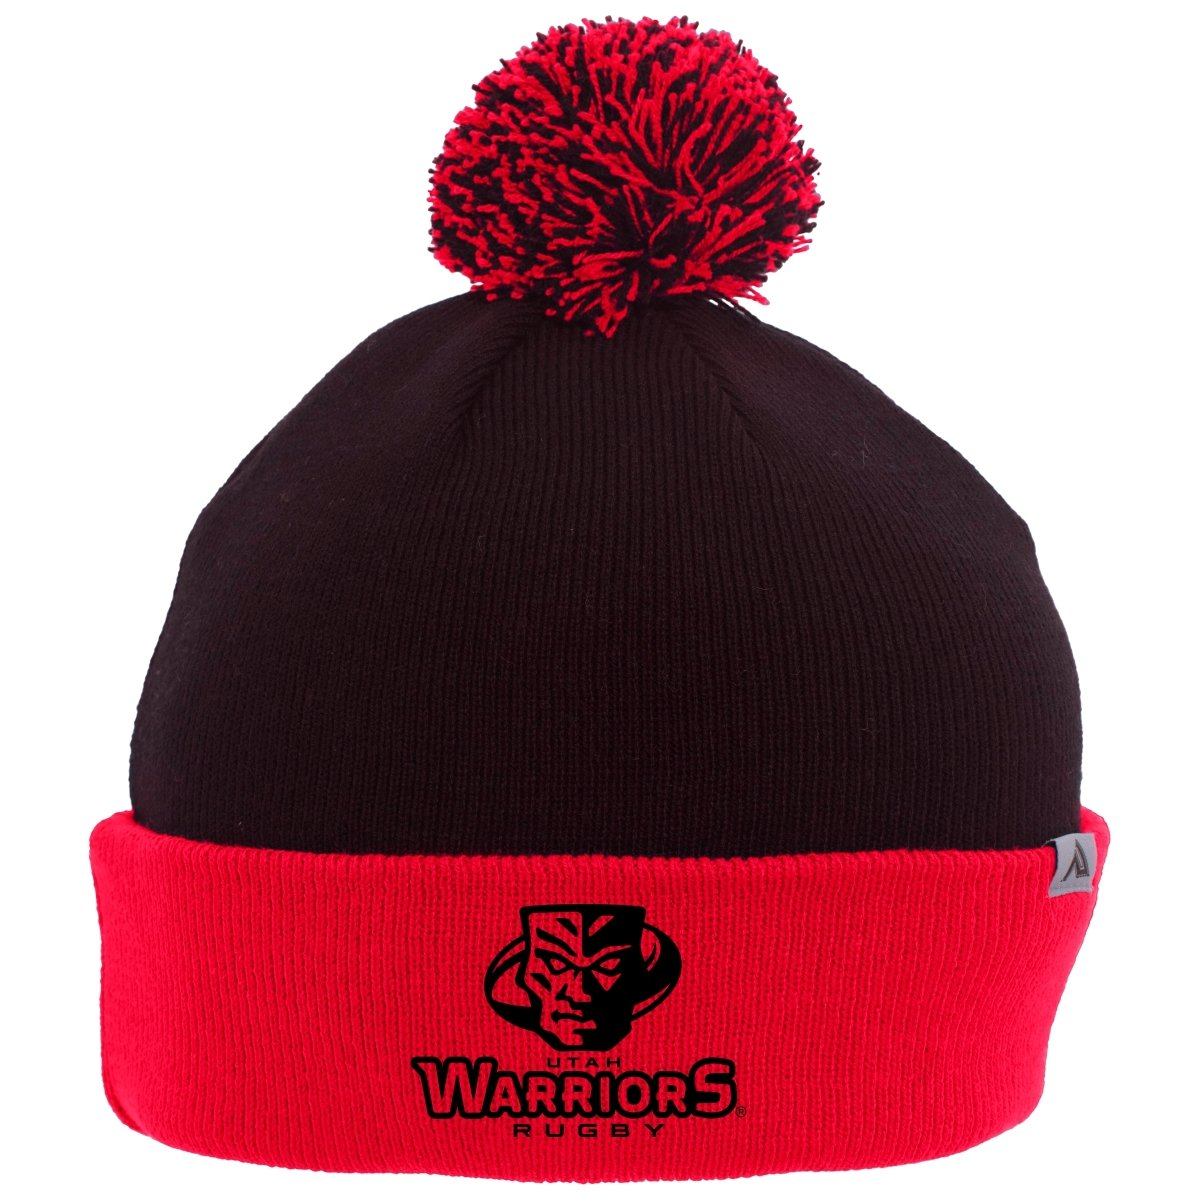 Utah Warriors 2021 Beanie - www.therugbyshop.com